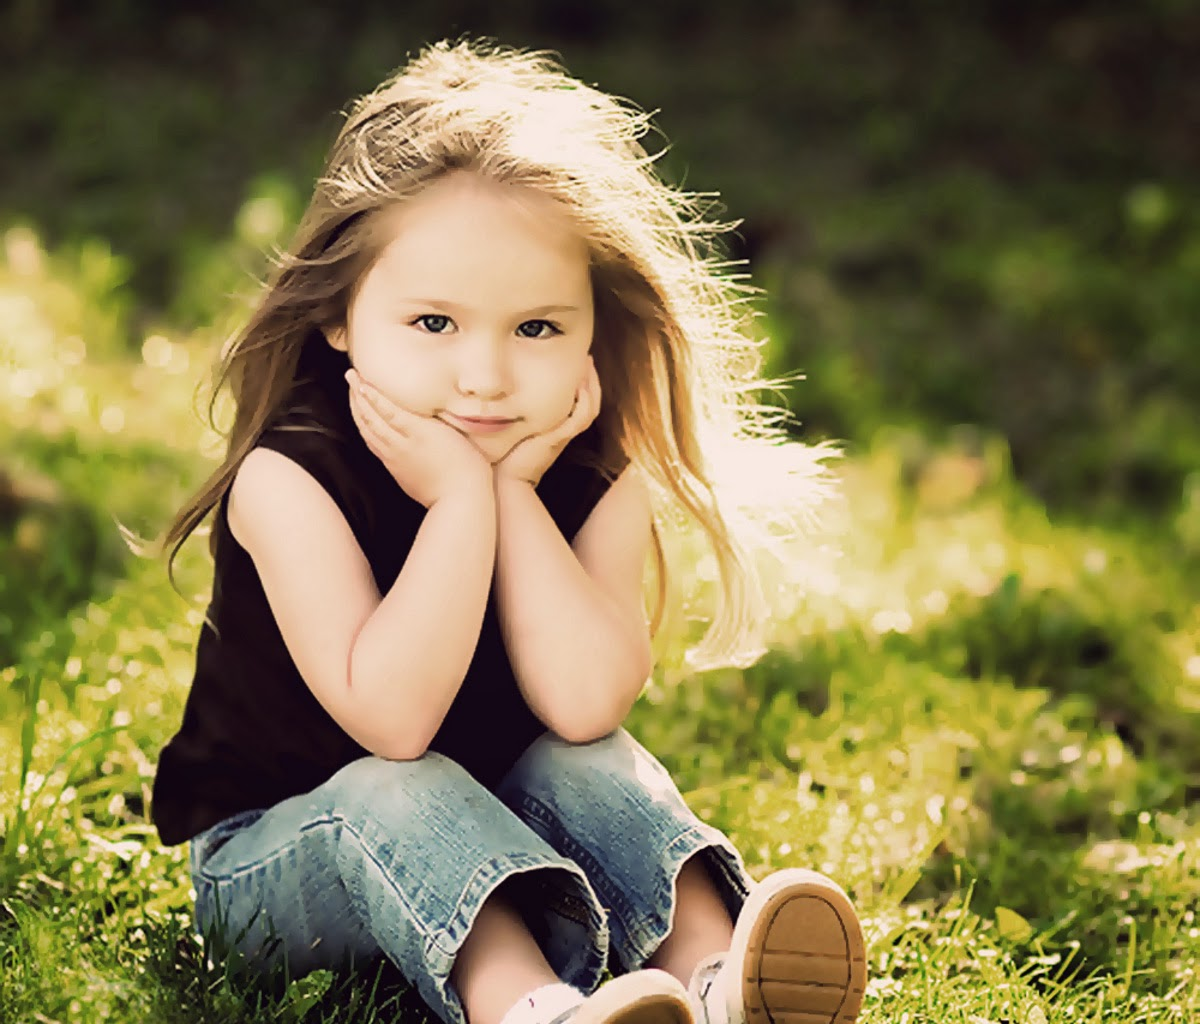 Hd Images Of Small Stylish Girls